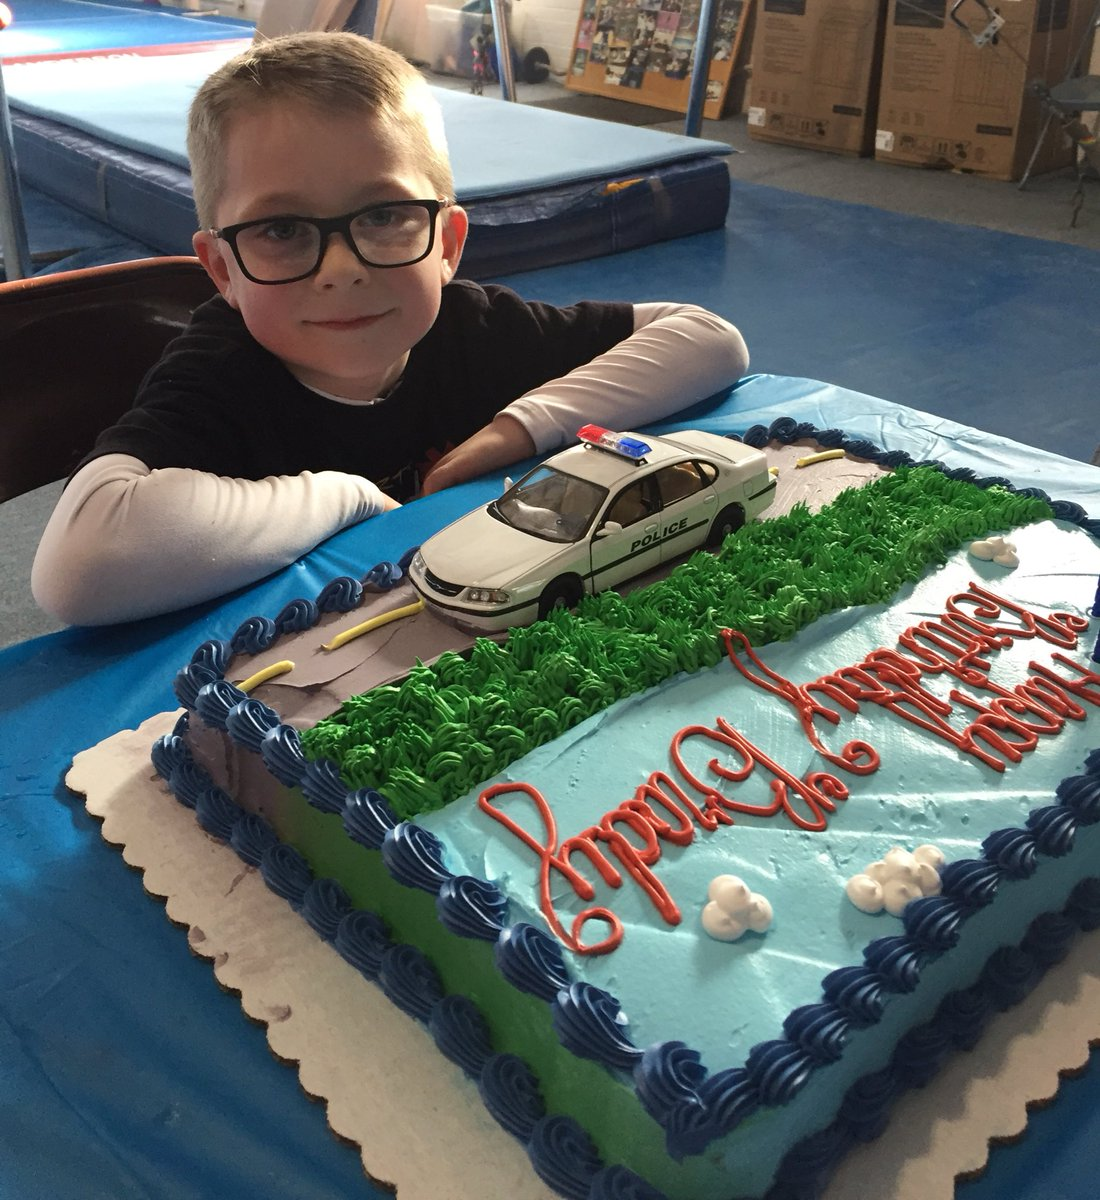 Walmart On Twitter Yes That Is An Awesome Cake Thanks For